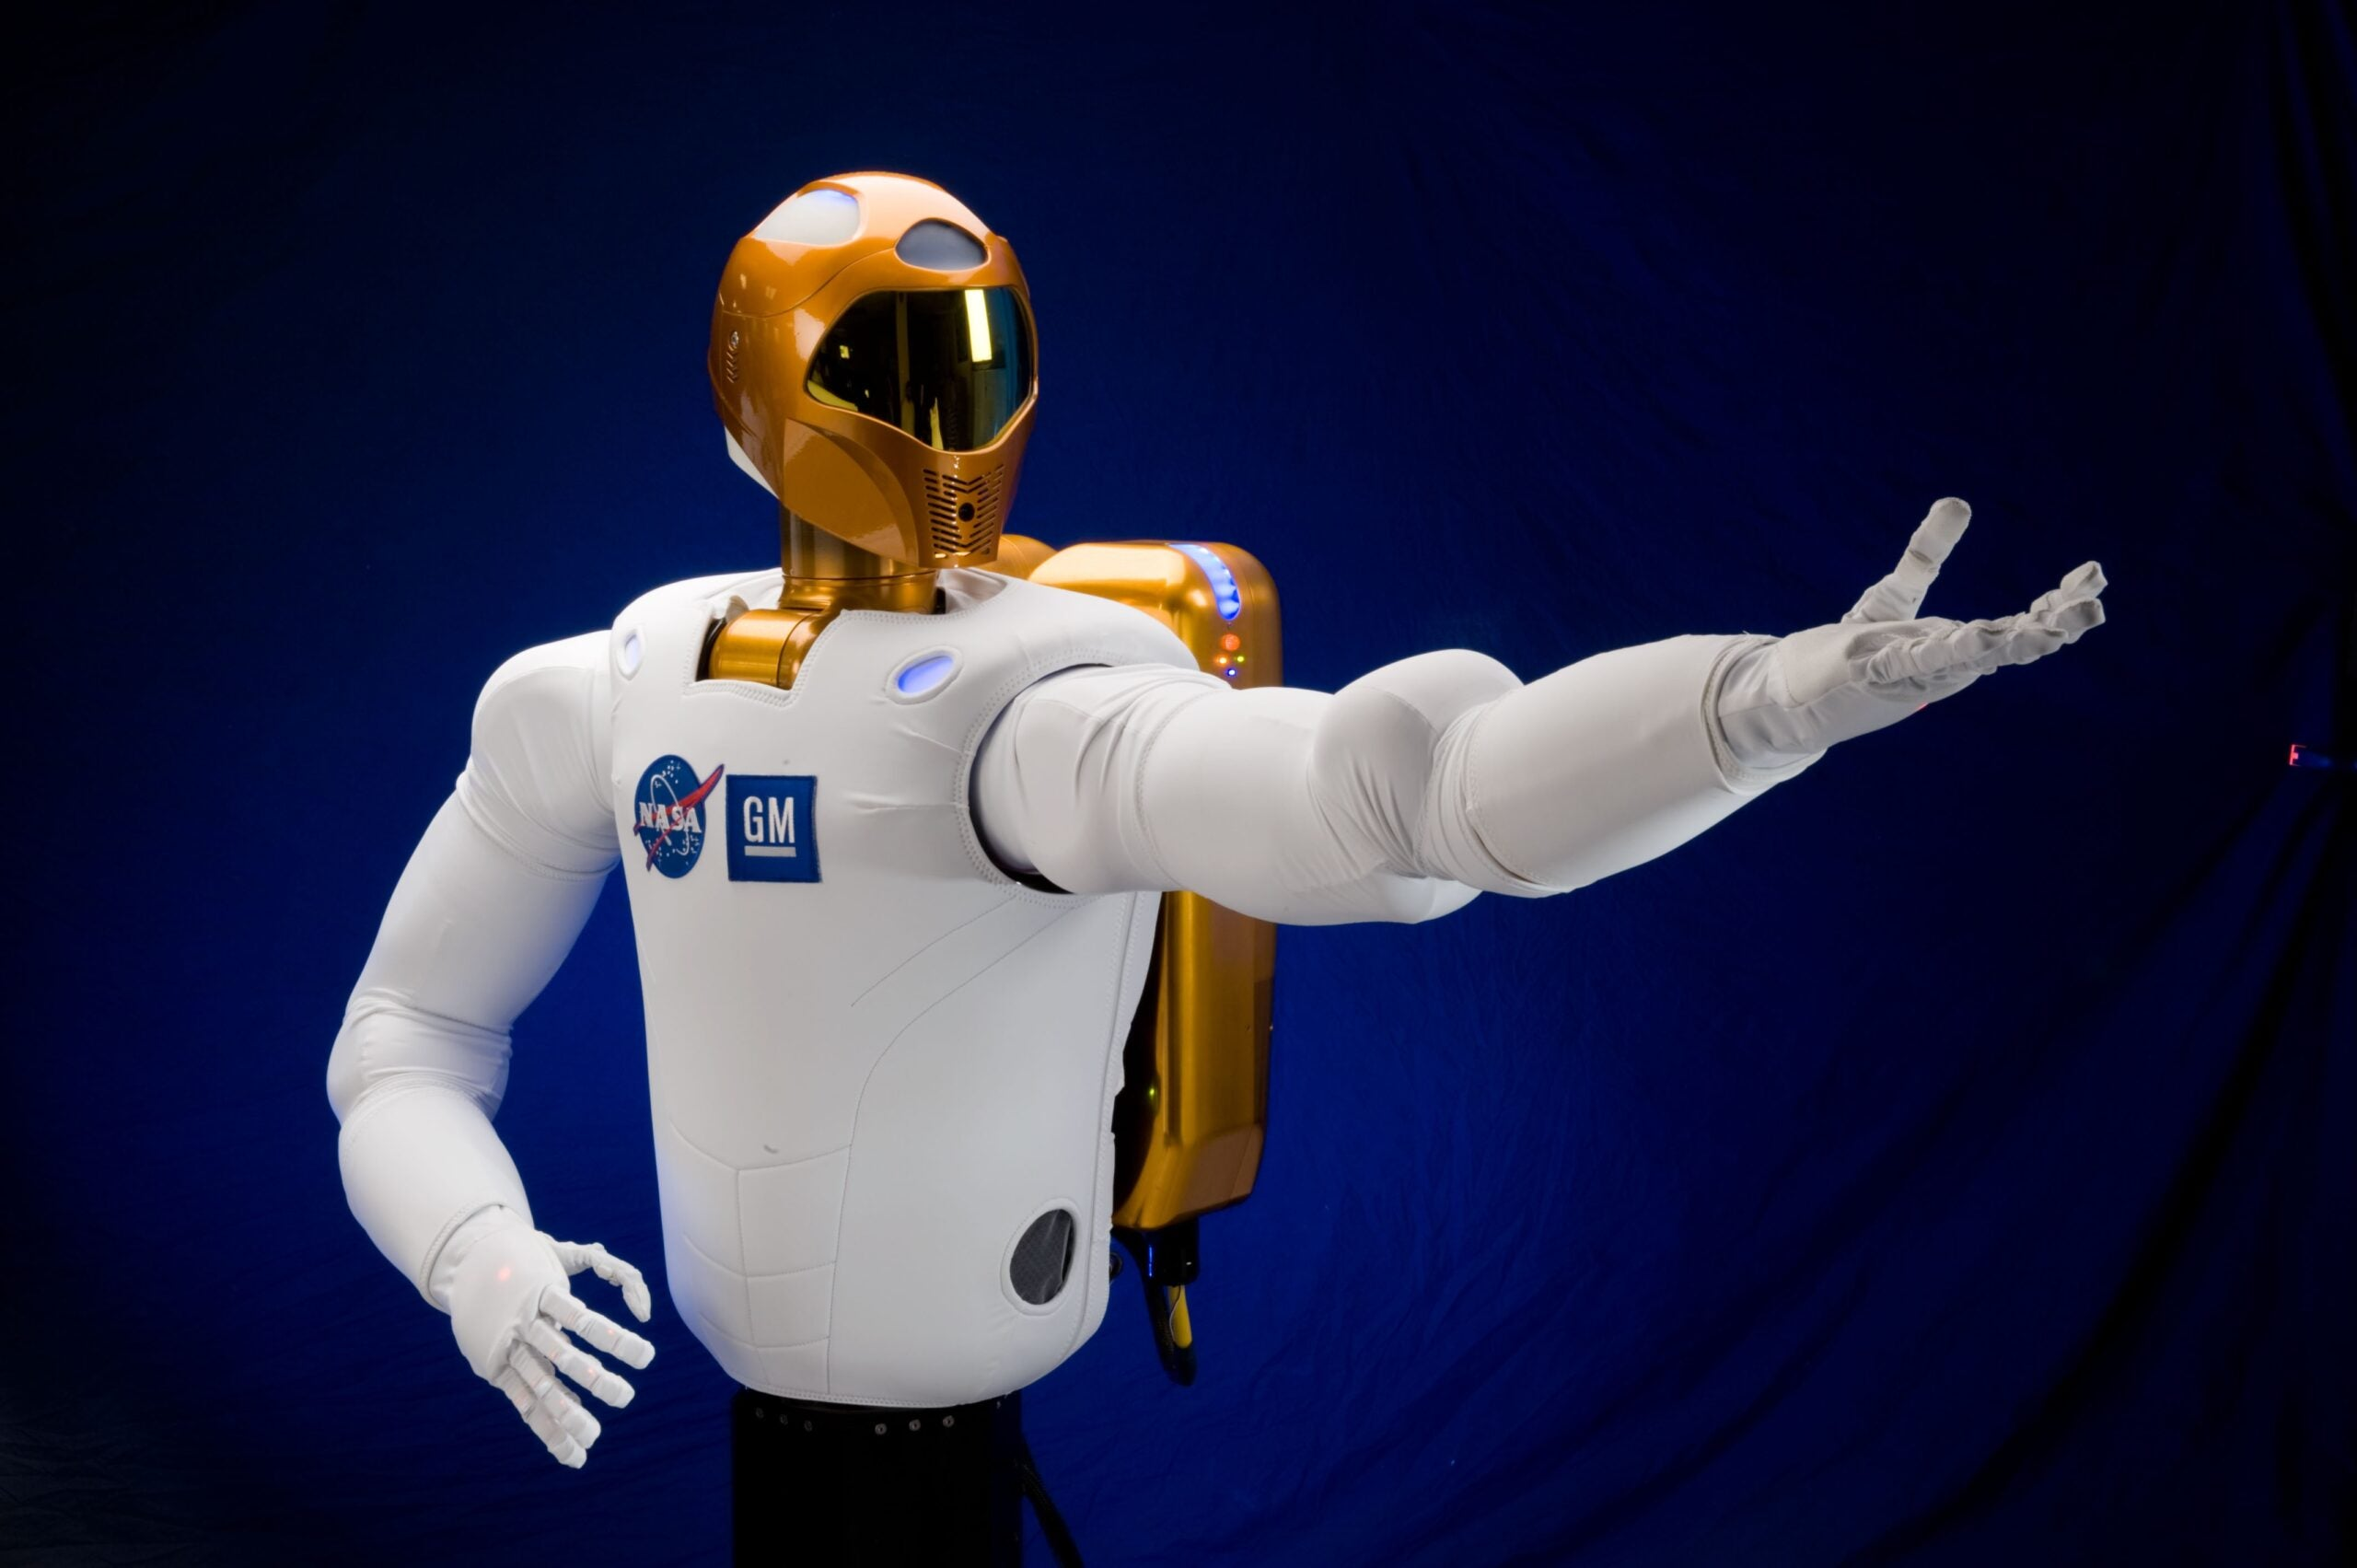 Are We in the Future Yet? A Robot Astronaut Is Tweeting